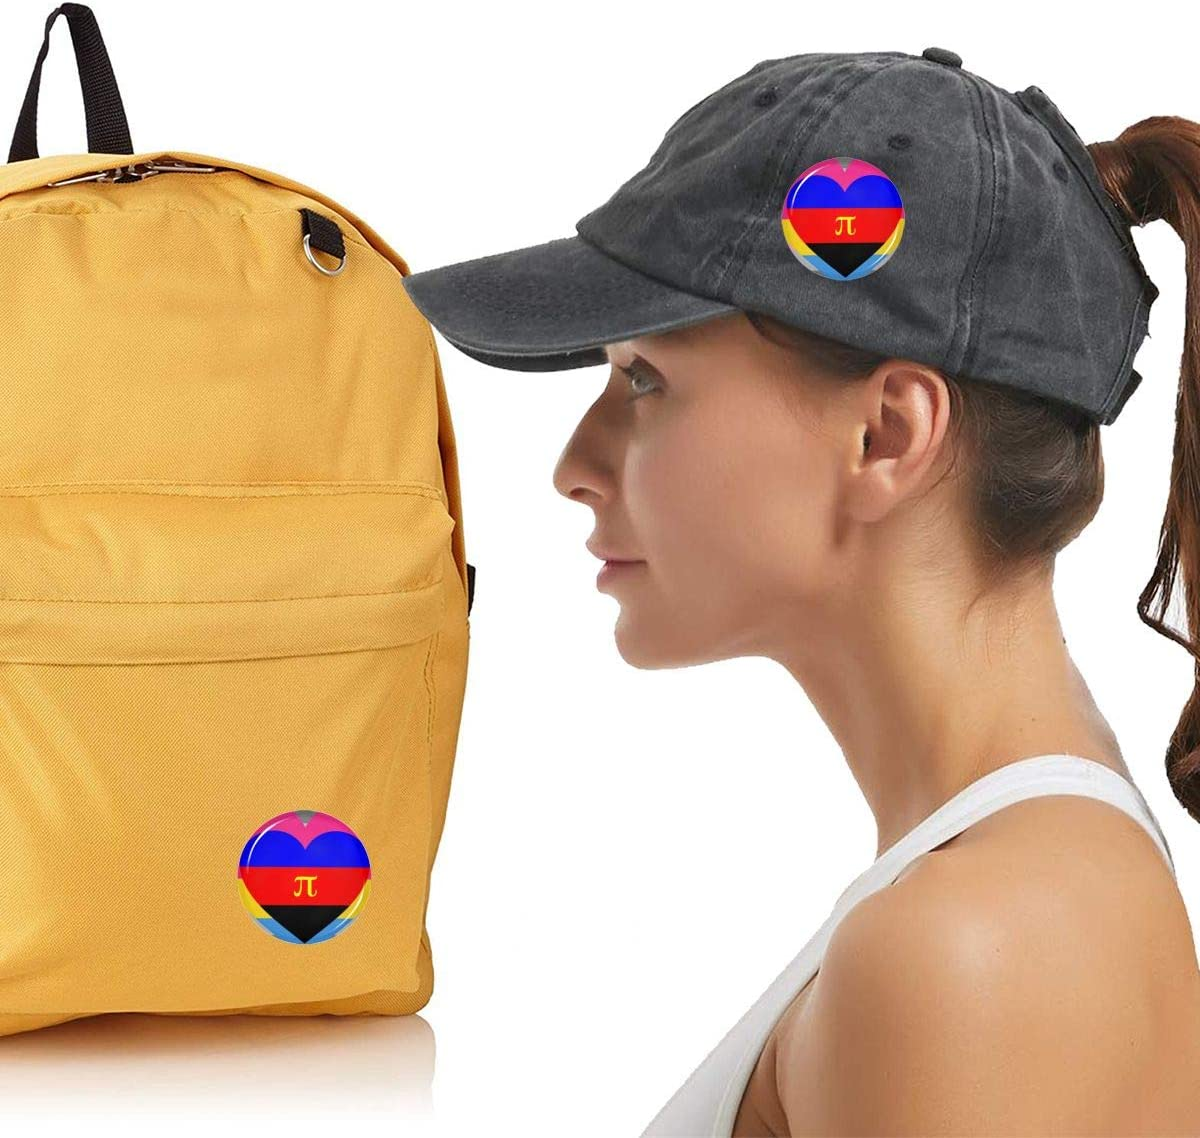 Demigirl Pansexual Polyamory Pride Flag Round Brooch Badge Pins For Women Men Girls T Shirt Bag Backpacks Hat Accessories